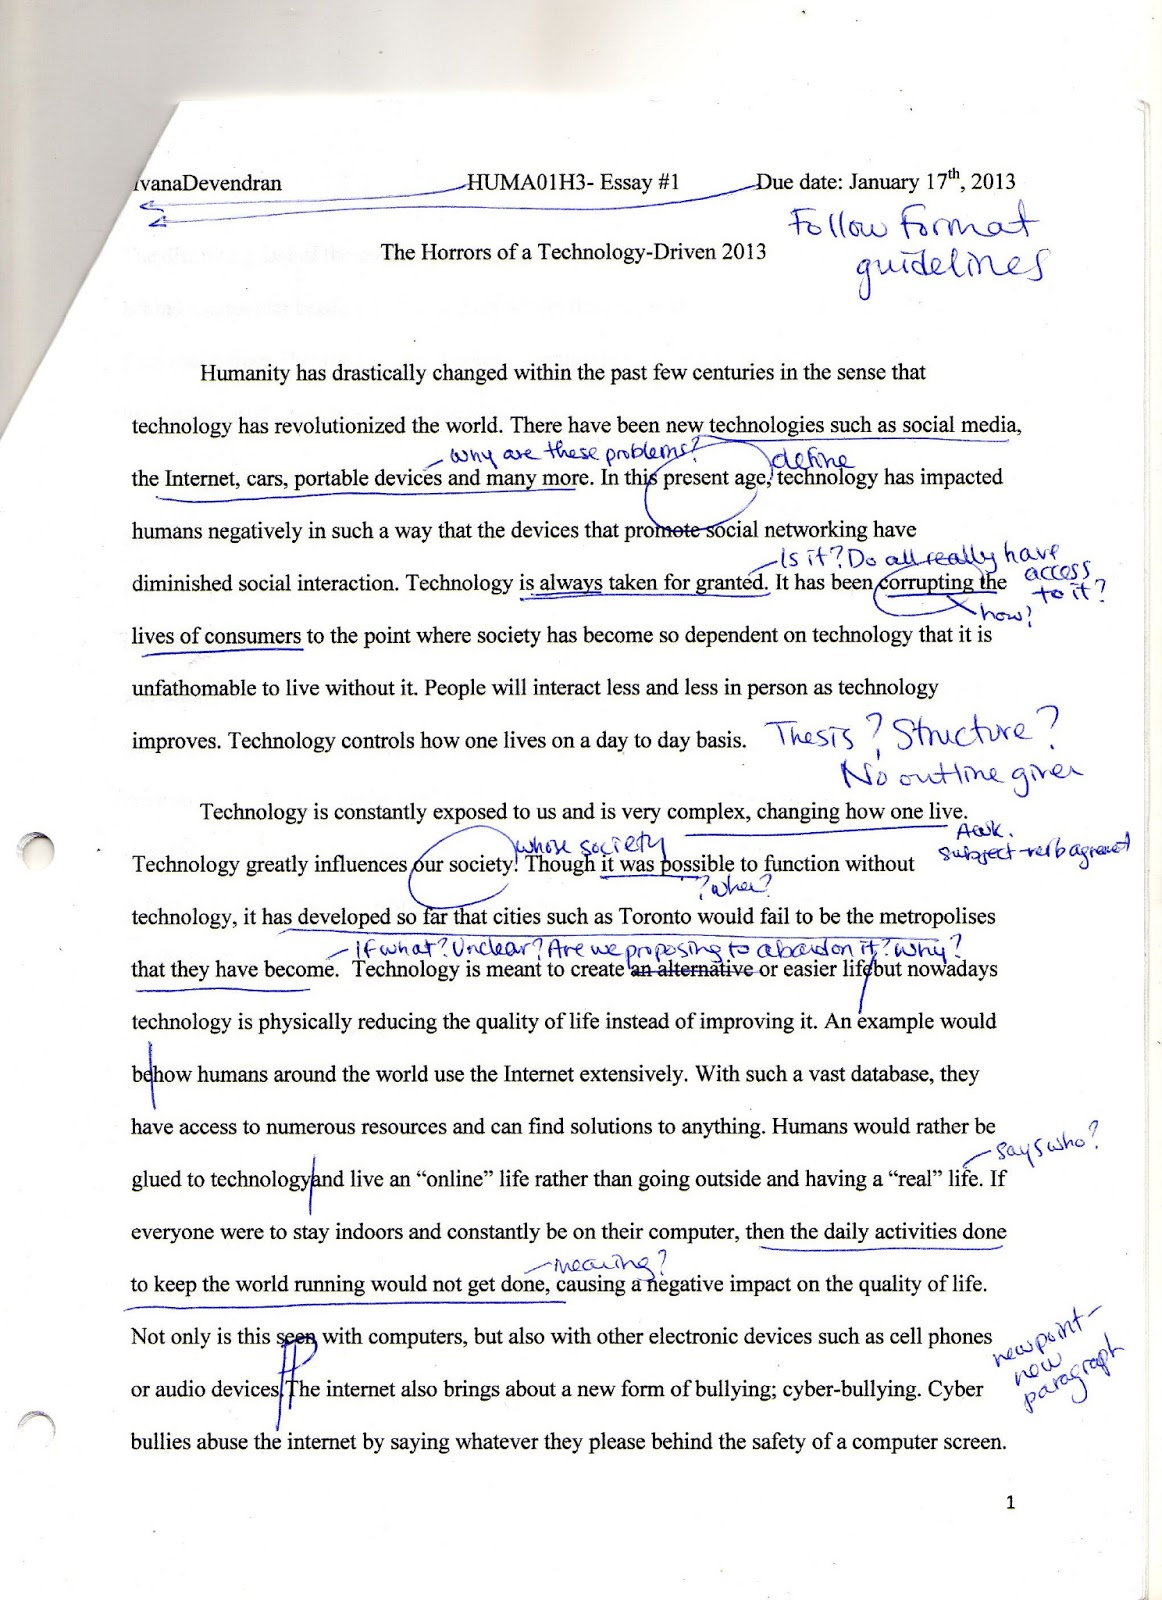 Essay Writing Software for Term Papers and Research Projects